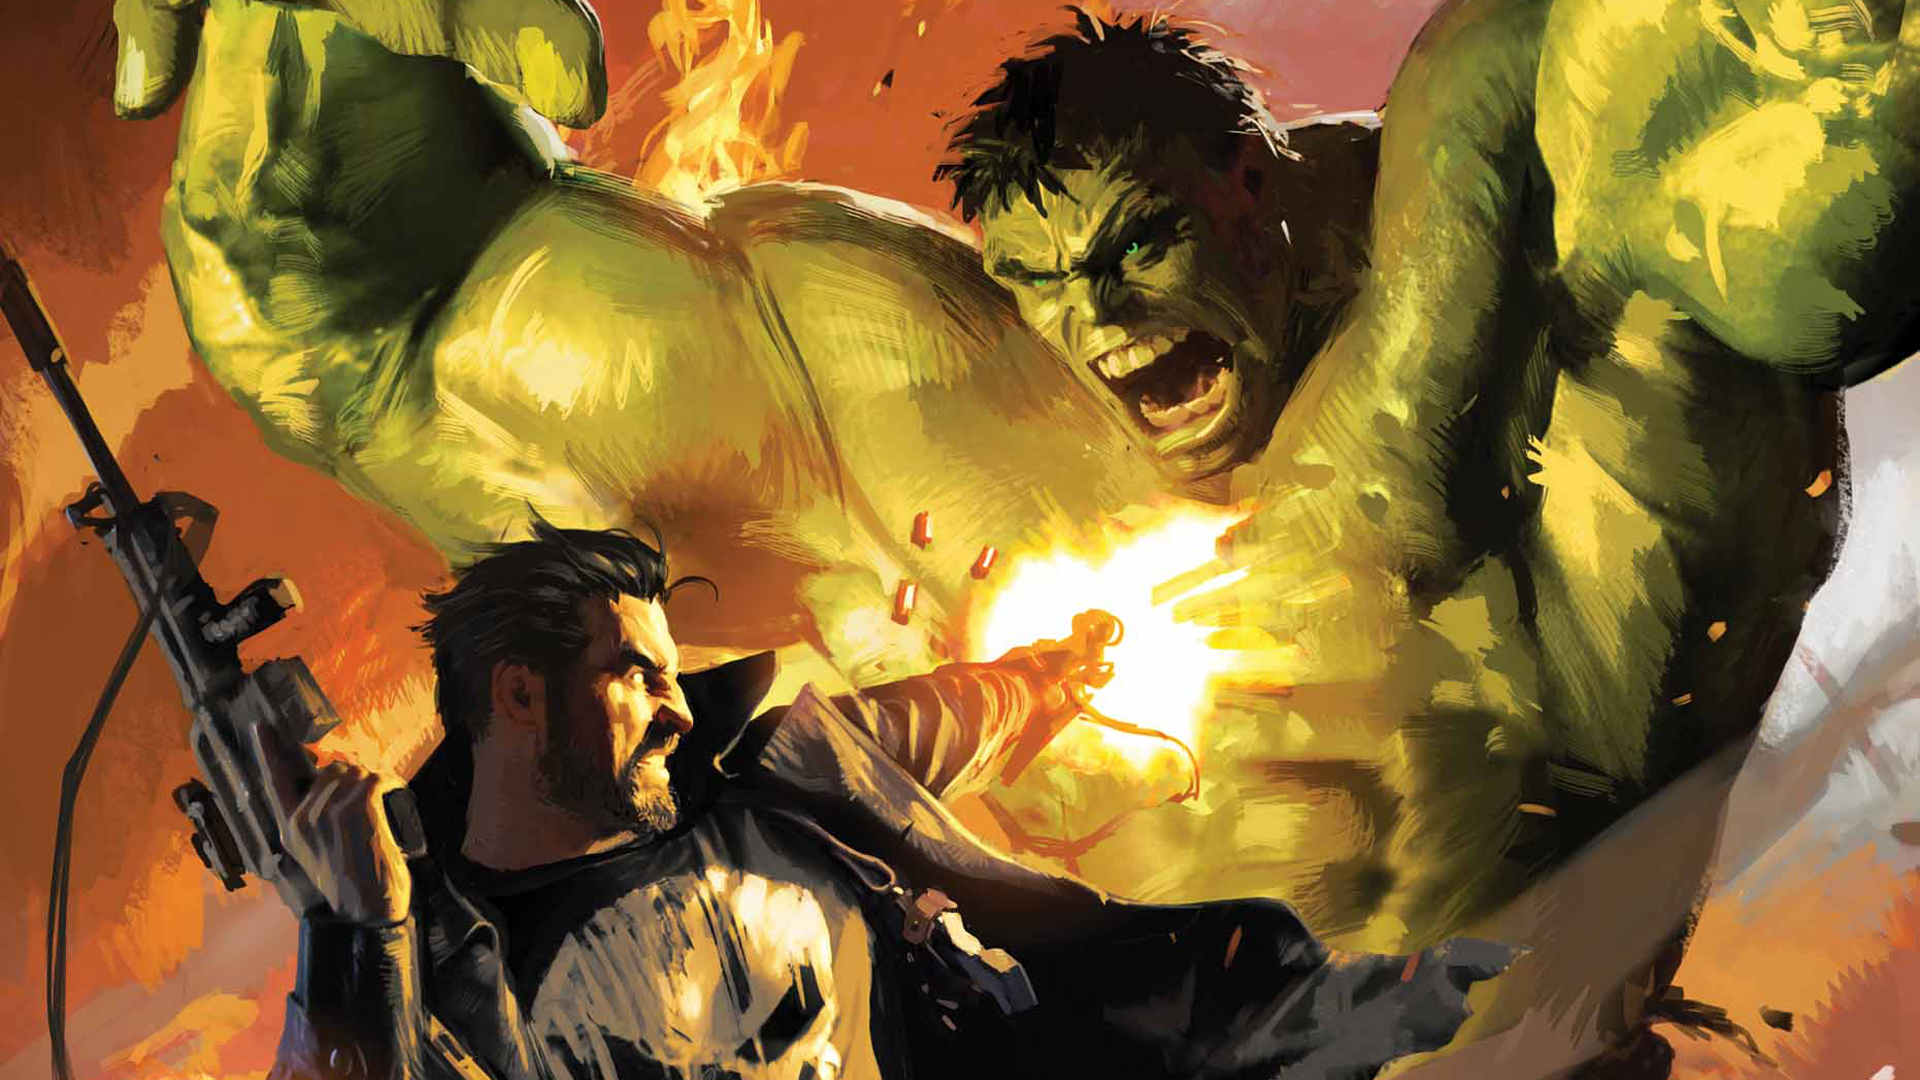 punisher vs hulk.jpg